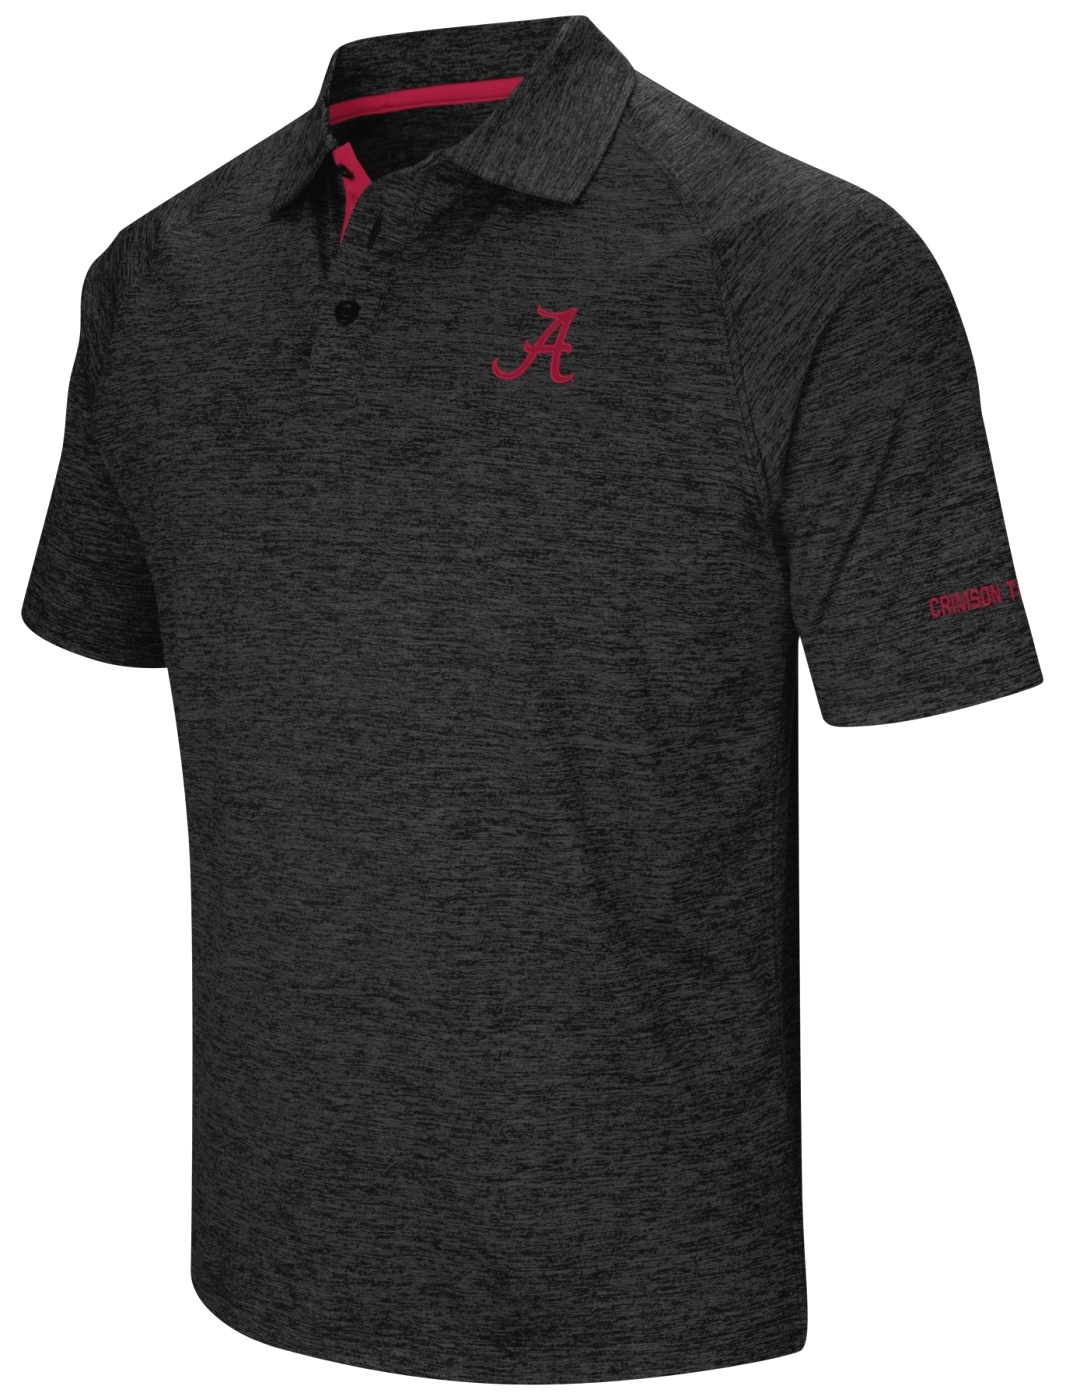 "Alabama Crimson Tide NCAA ""Down Swing"" Men's Performance Polo Shirt"